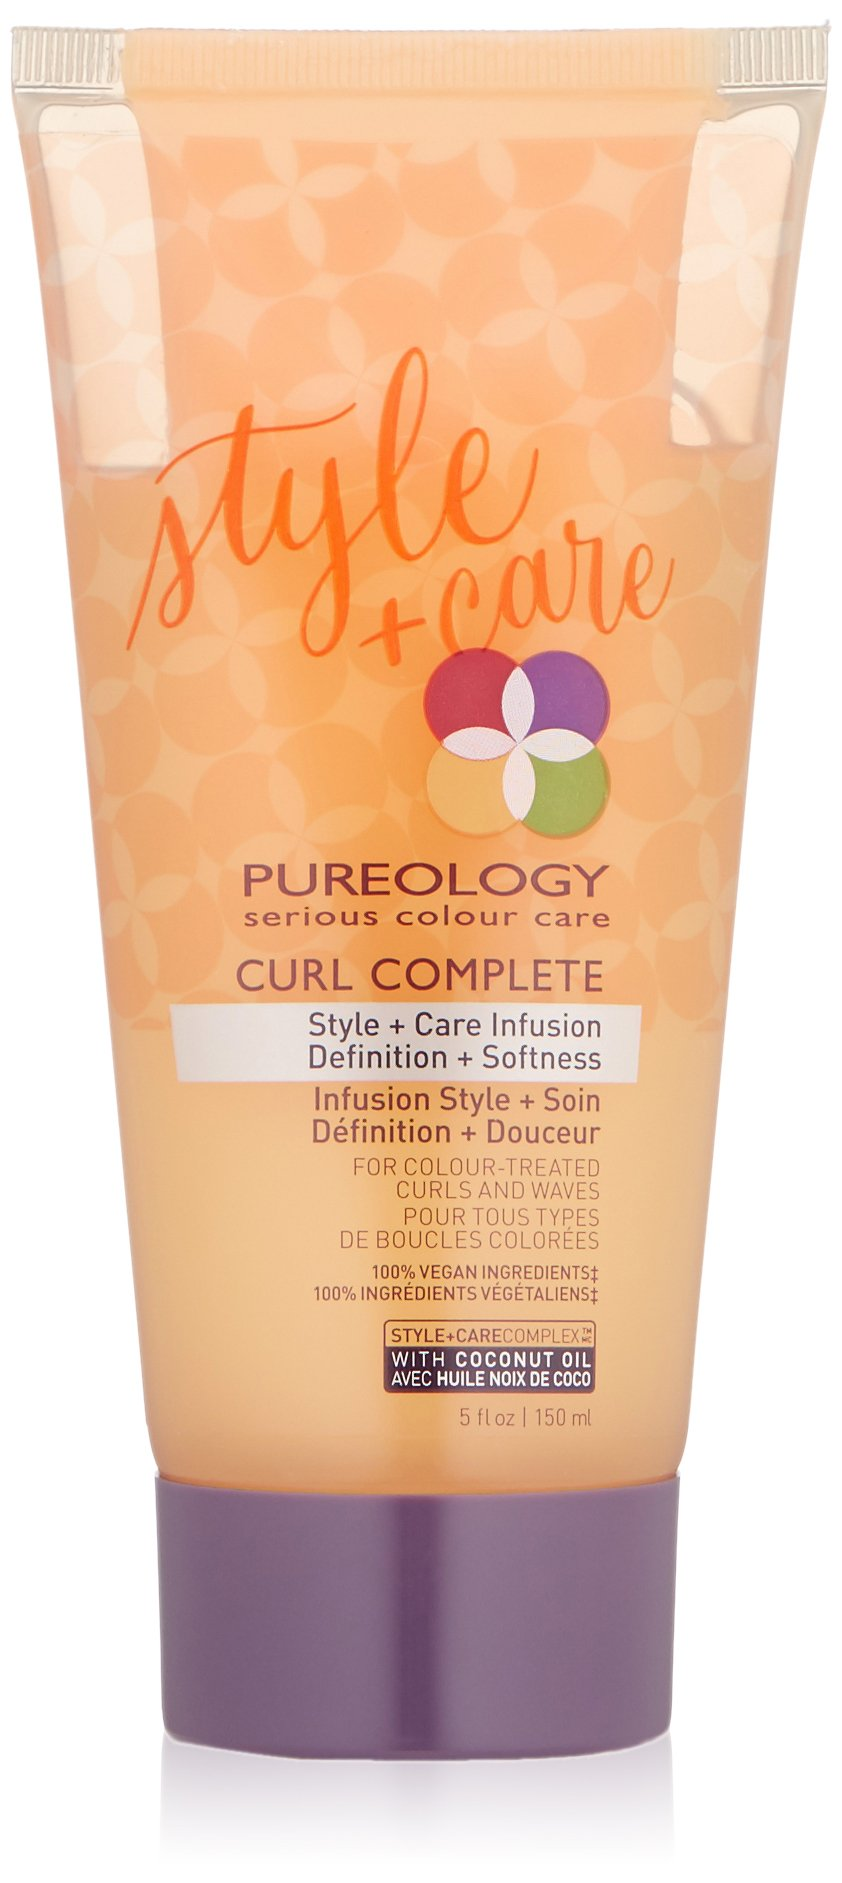 Pureology Curl Complete Style & Care Infusion, 5.0 fl. oz. by Pureology